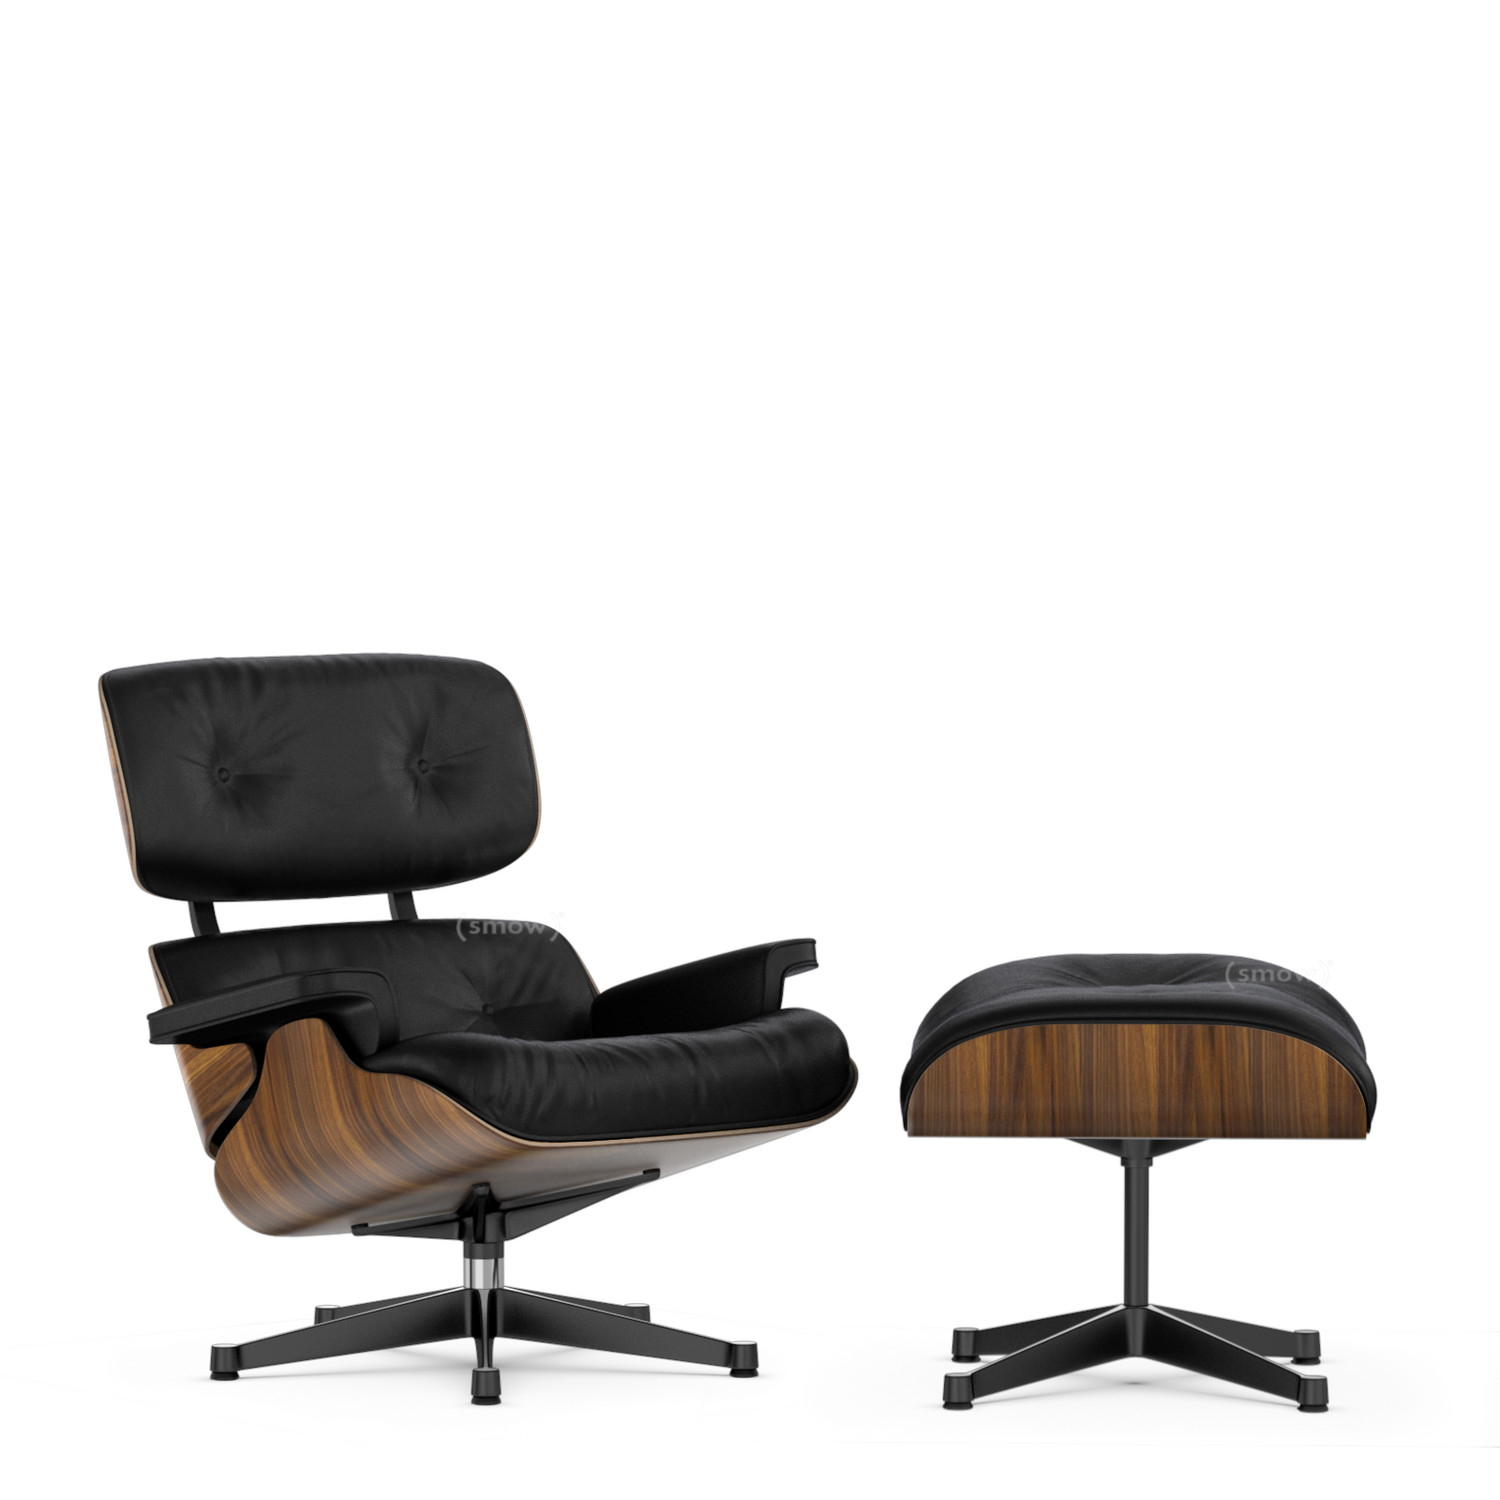 eames vitra lounge chair vitra eames lounge chair and ottoman lounge chair ottoman lounge. Black Bedroom Furniture Sets. Home Design Ideas